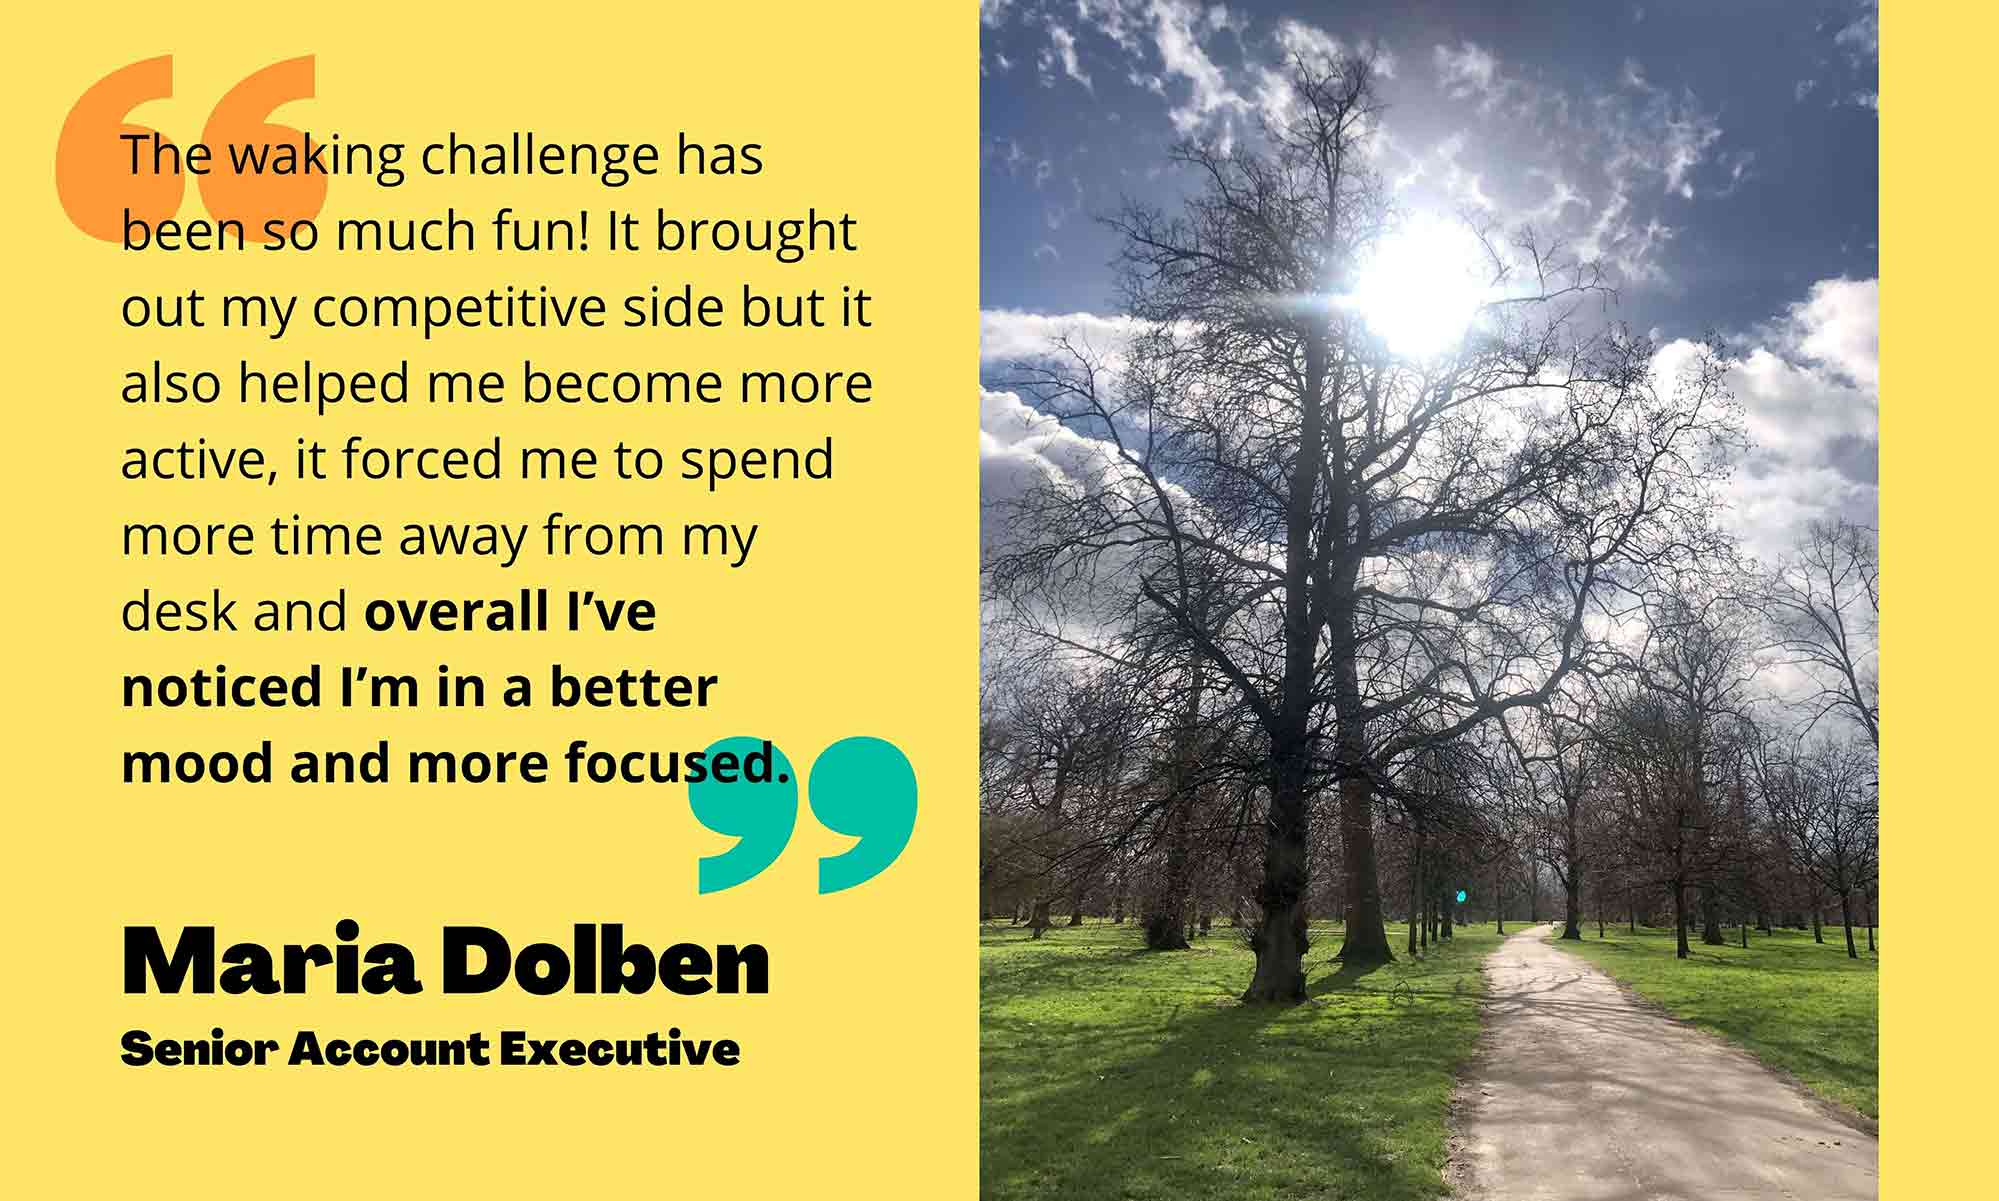 Quote from Maria Dolben on left side, picture of outdoors on right